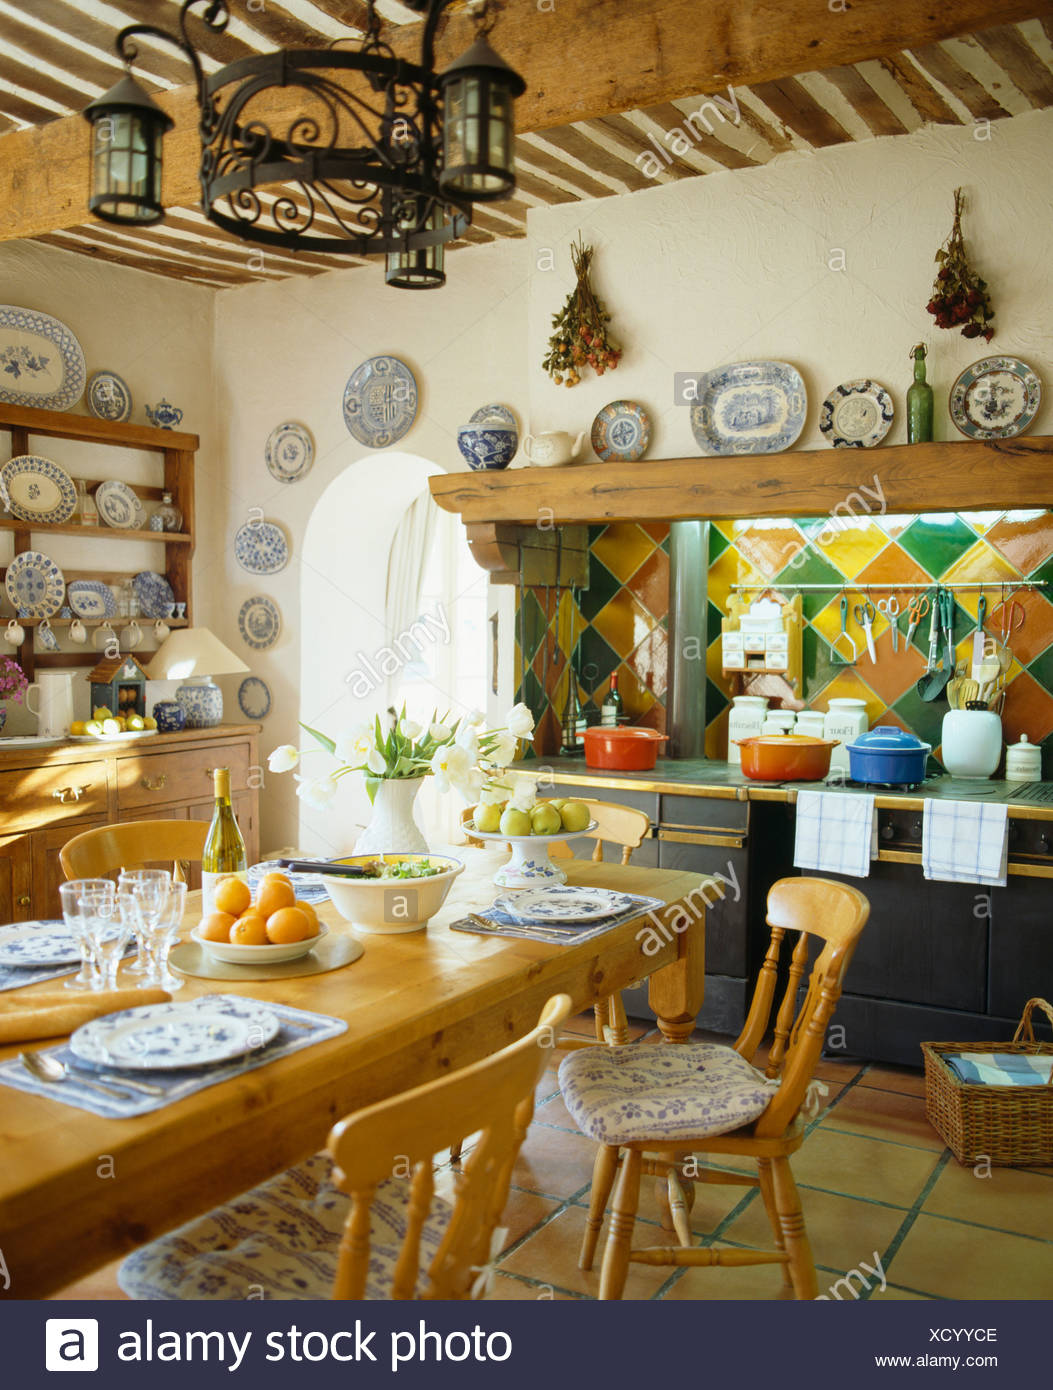 Lantern light fitting above pine chairs and table set for lunch in french country kitchen with colorful tiles above range oven